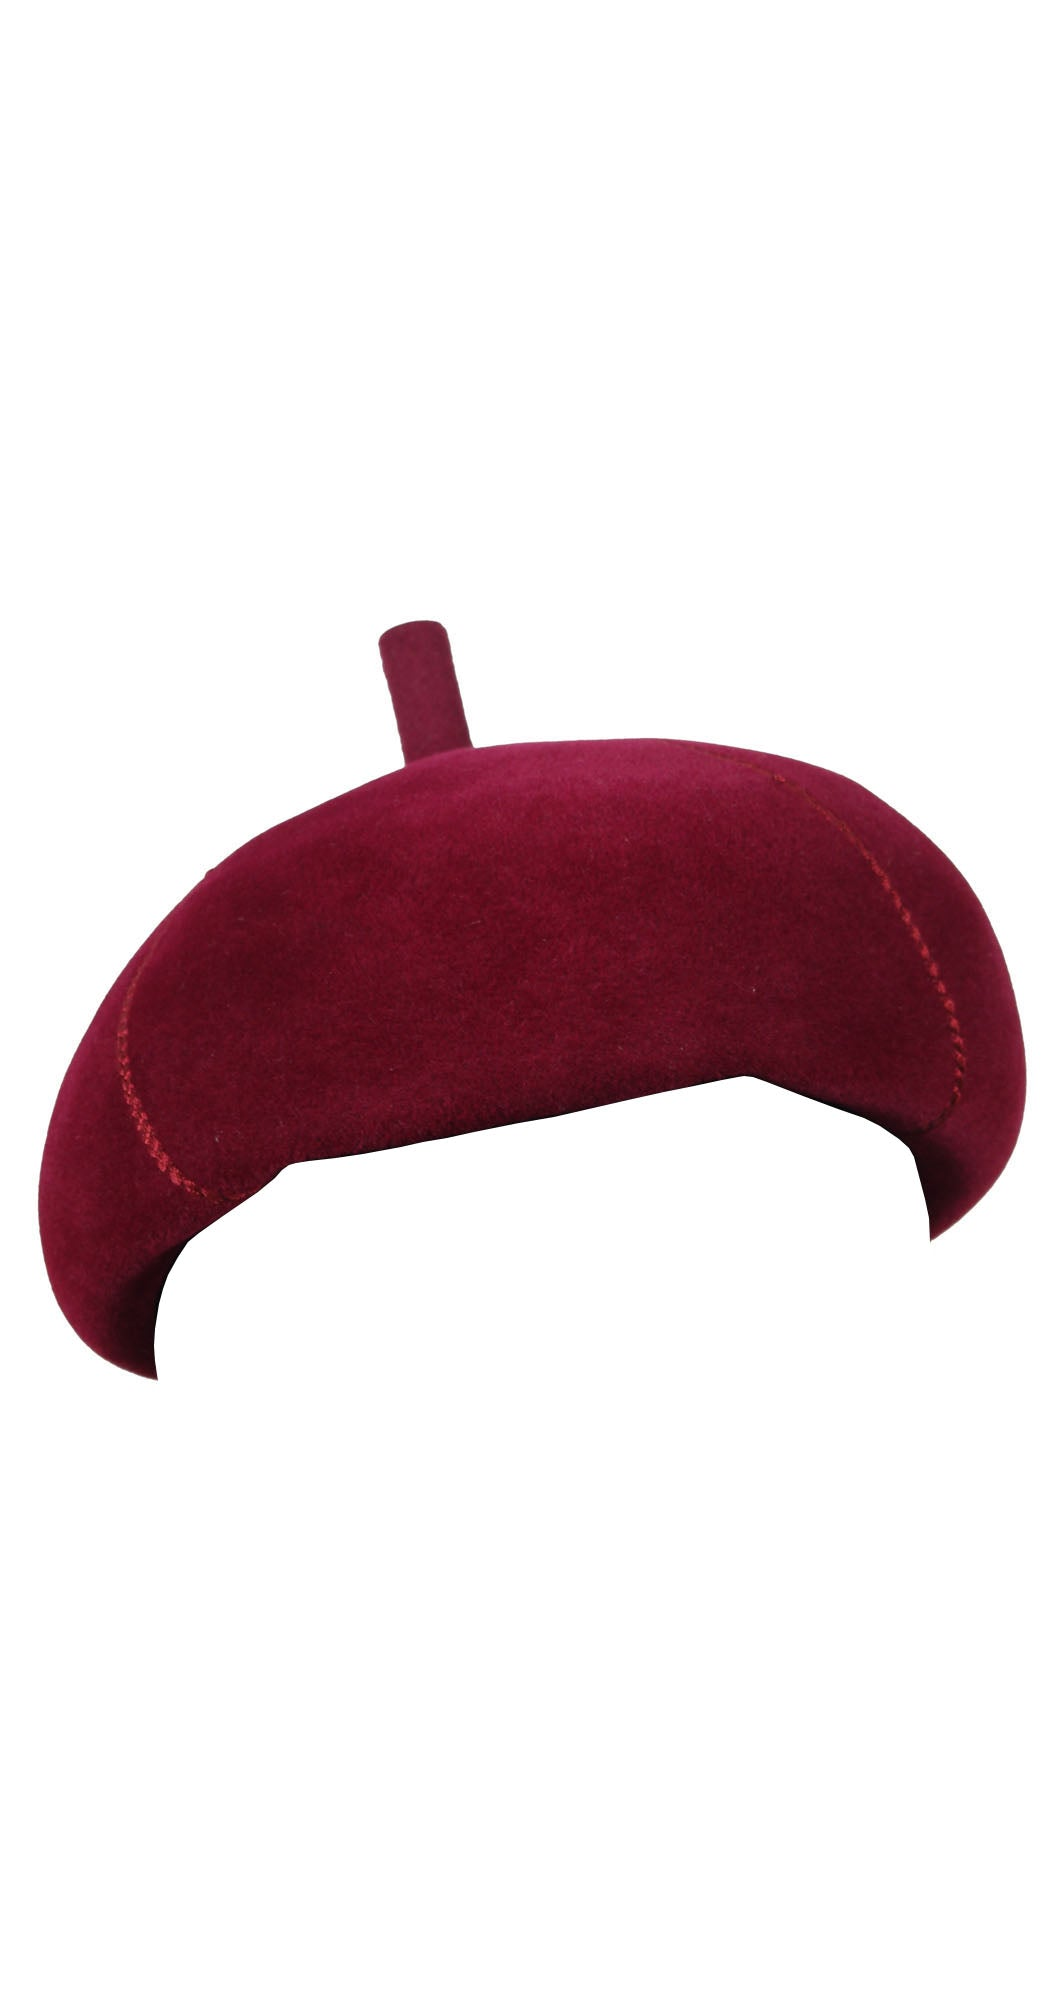 1960s Mod Burgundy Rabbit Felt Beret Hat